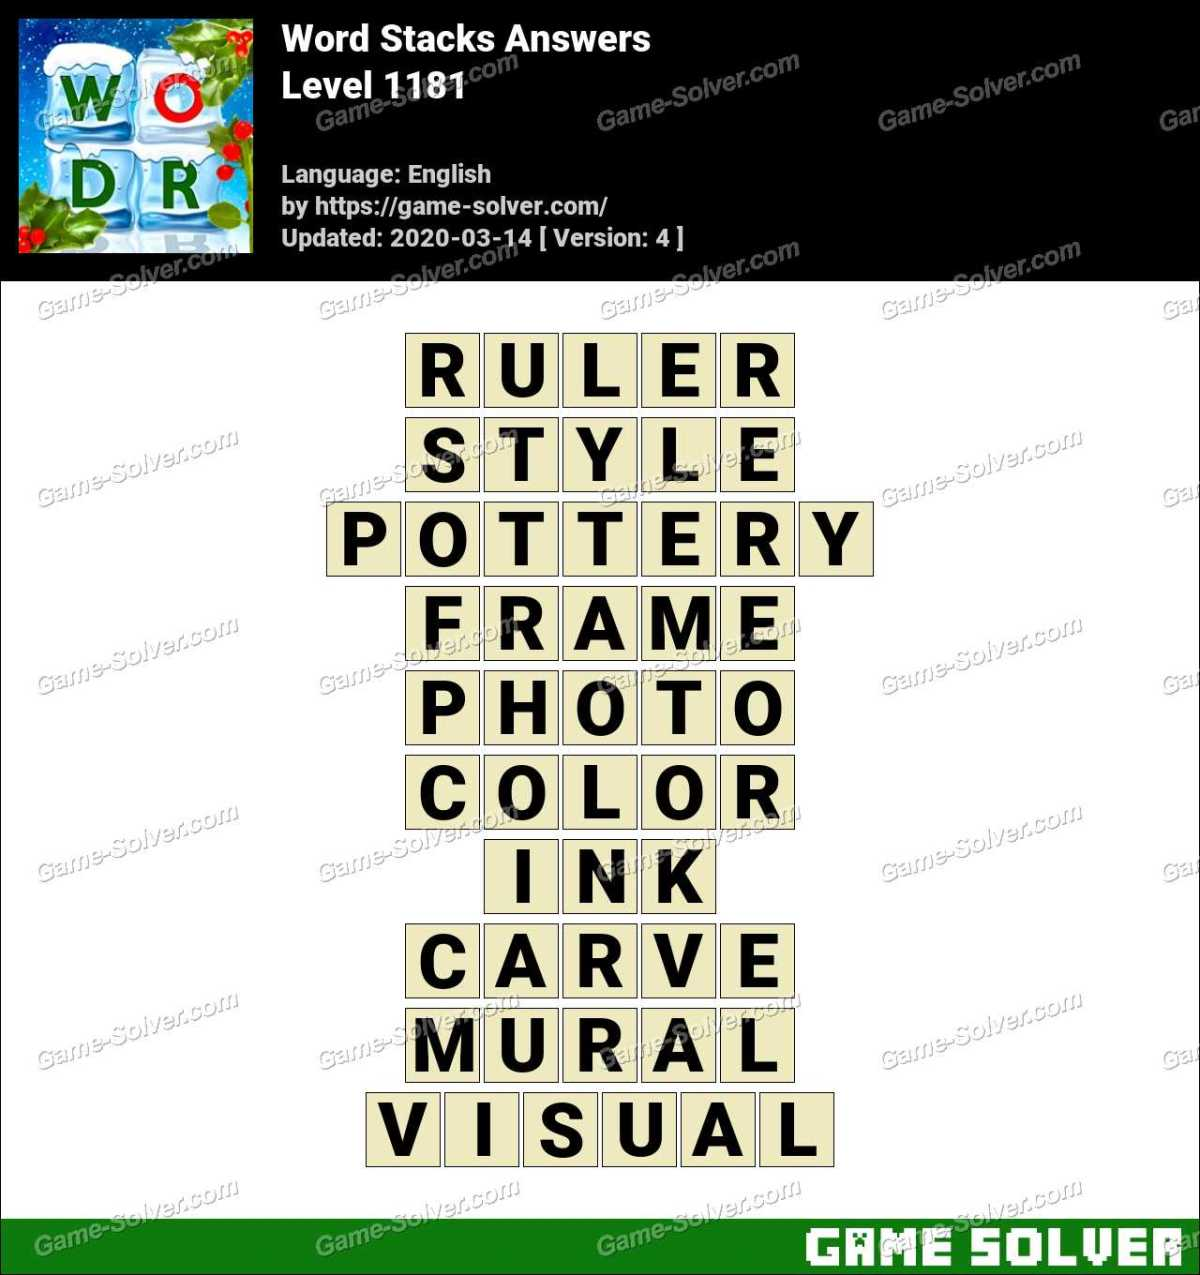 Word Stacks Level 1181 Answers